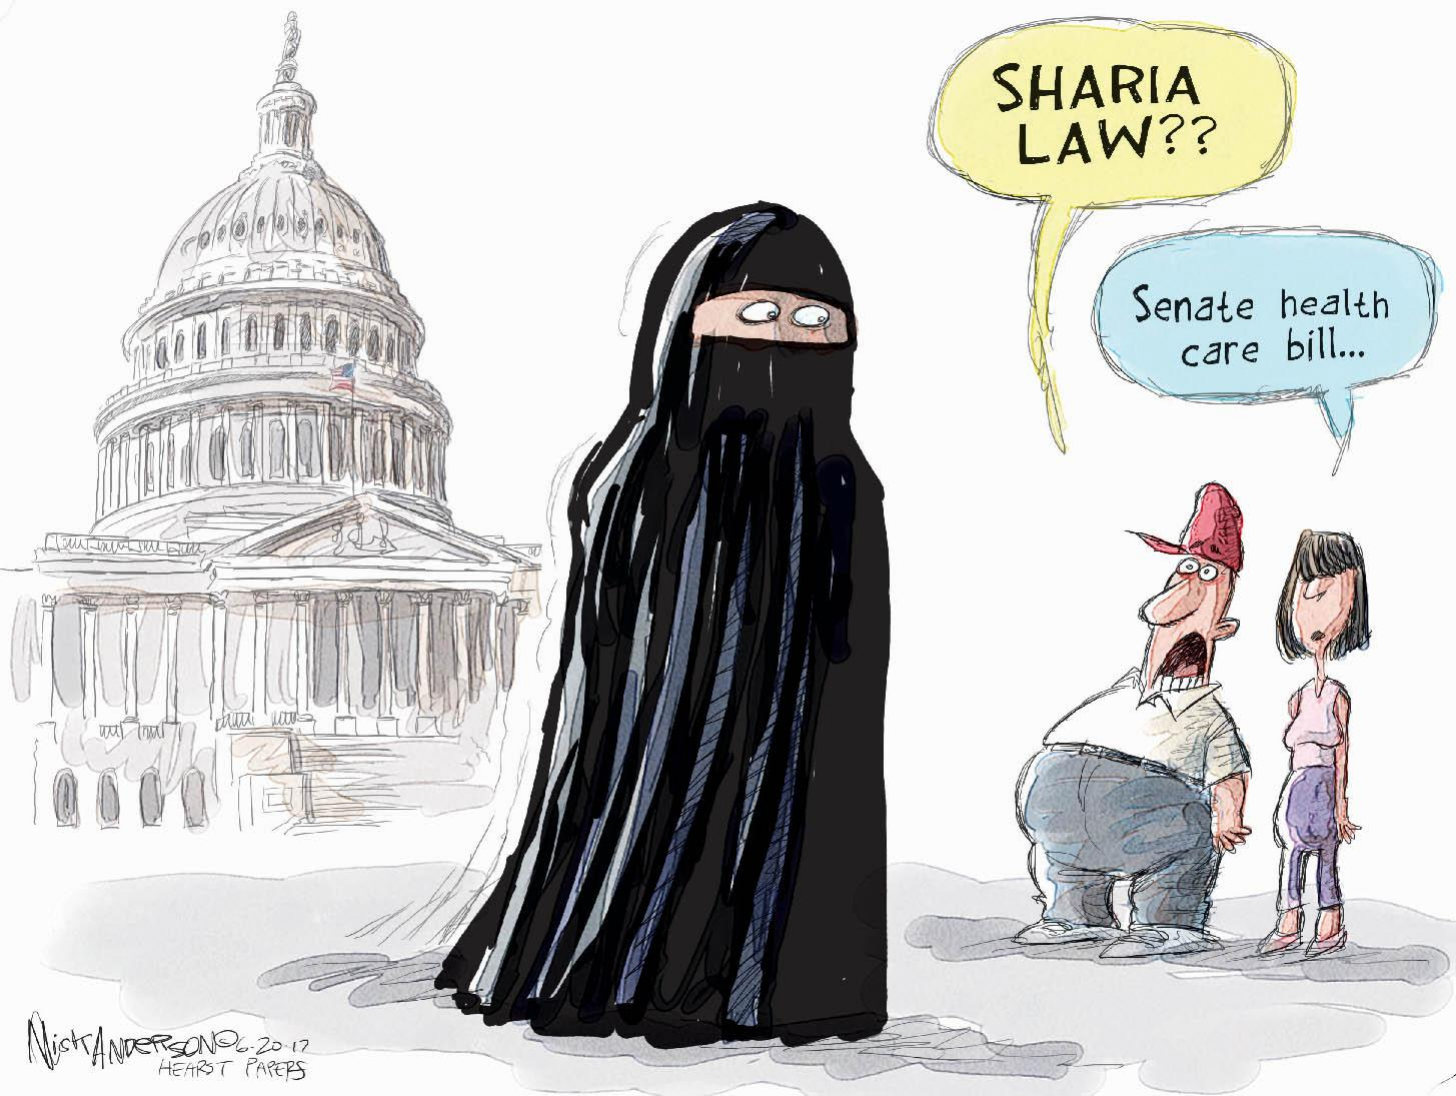 Picture of what appears to be a Muslim woman in full niqab. Man asks,